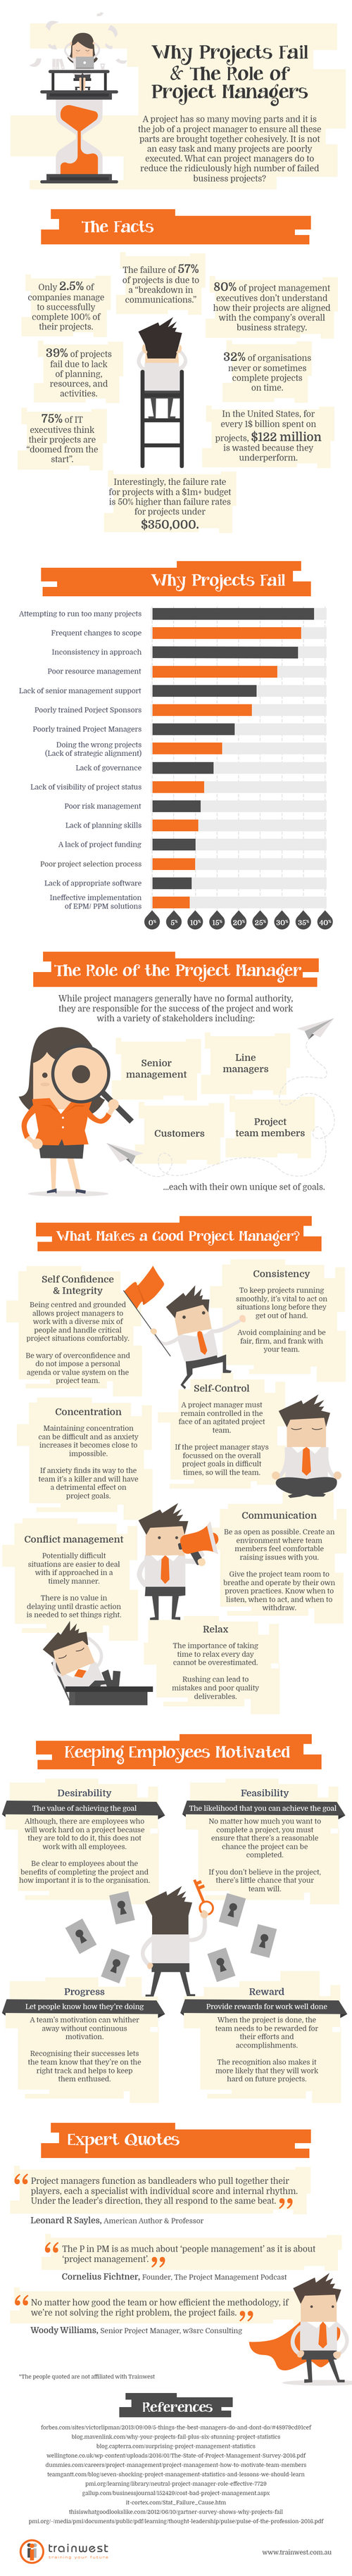 4 Best Project Management Tools For Smbs Business Analyst Learnings State Diagrams Seilevel